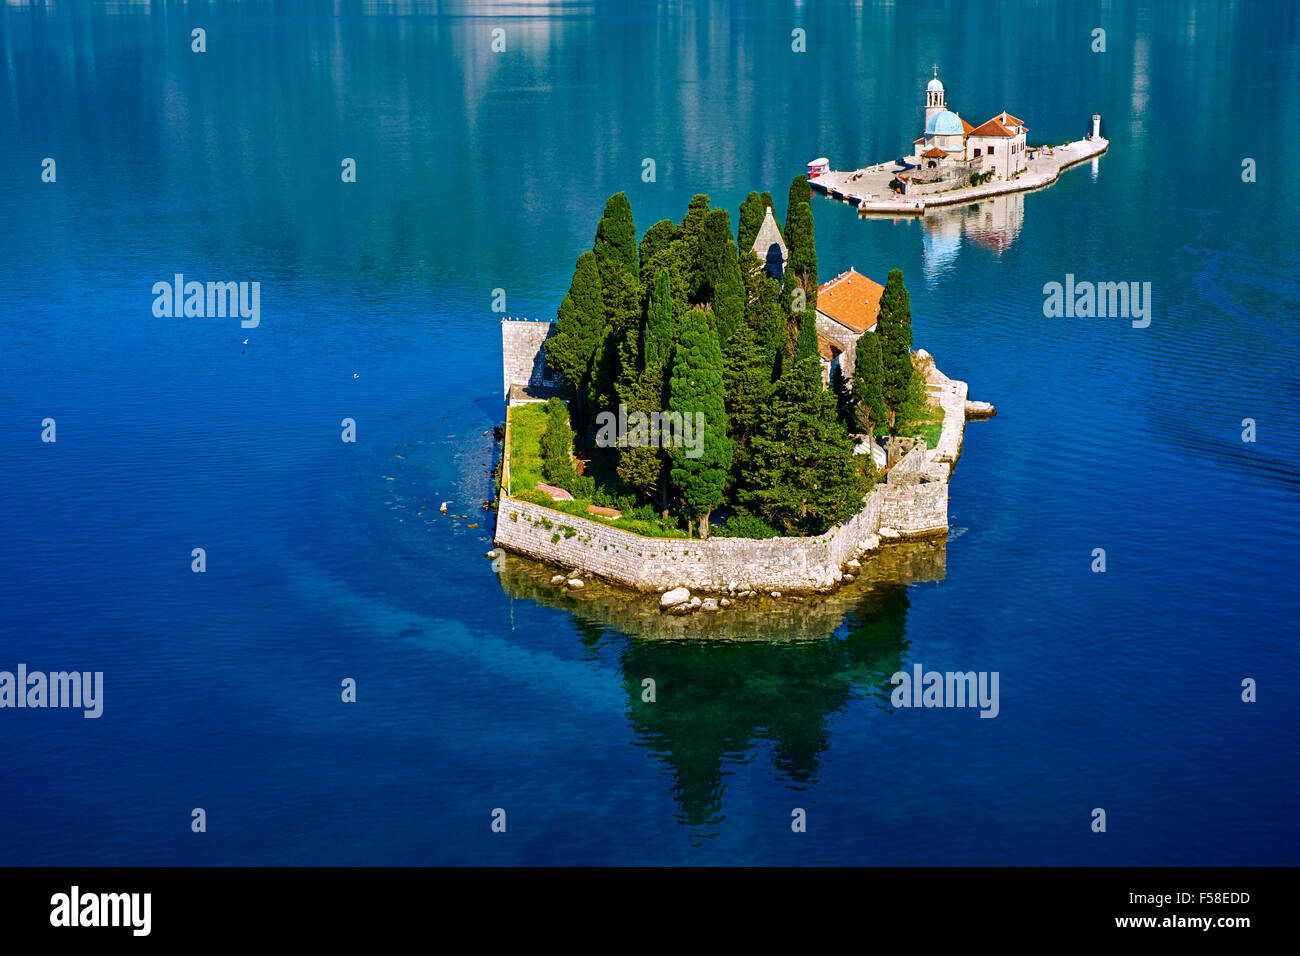 Montenegro, Adriatic coast, Bay of Kotor, Perast, Island of St. George and Our Lady of the Rock island - Stock Image